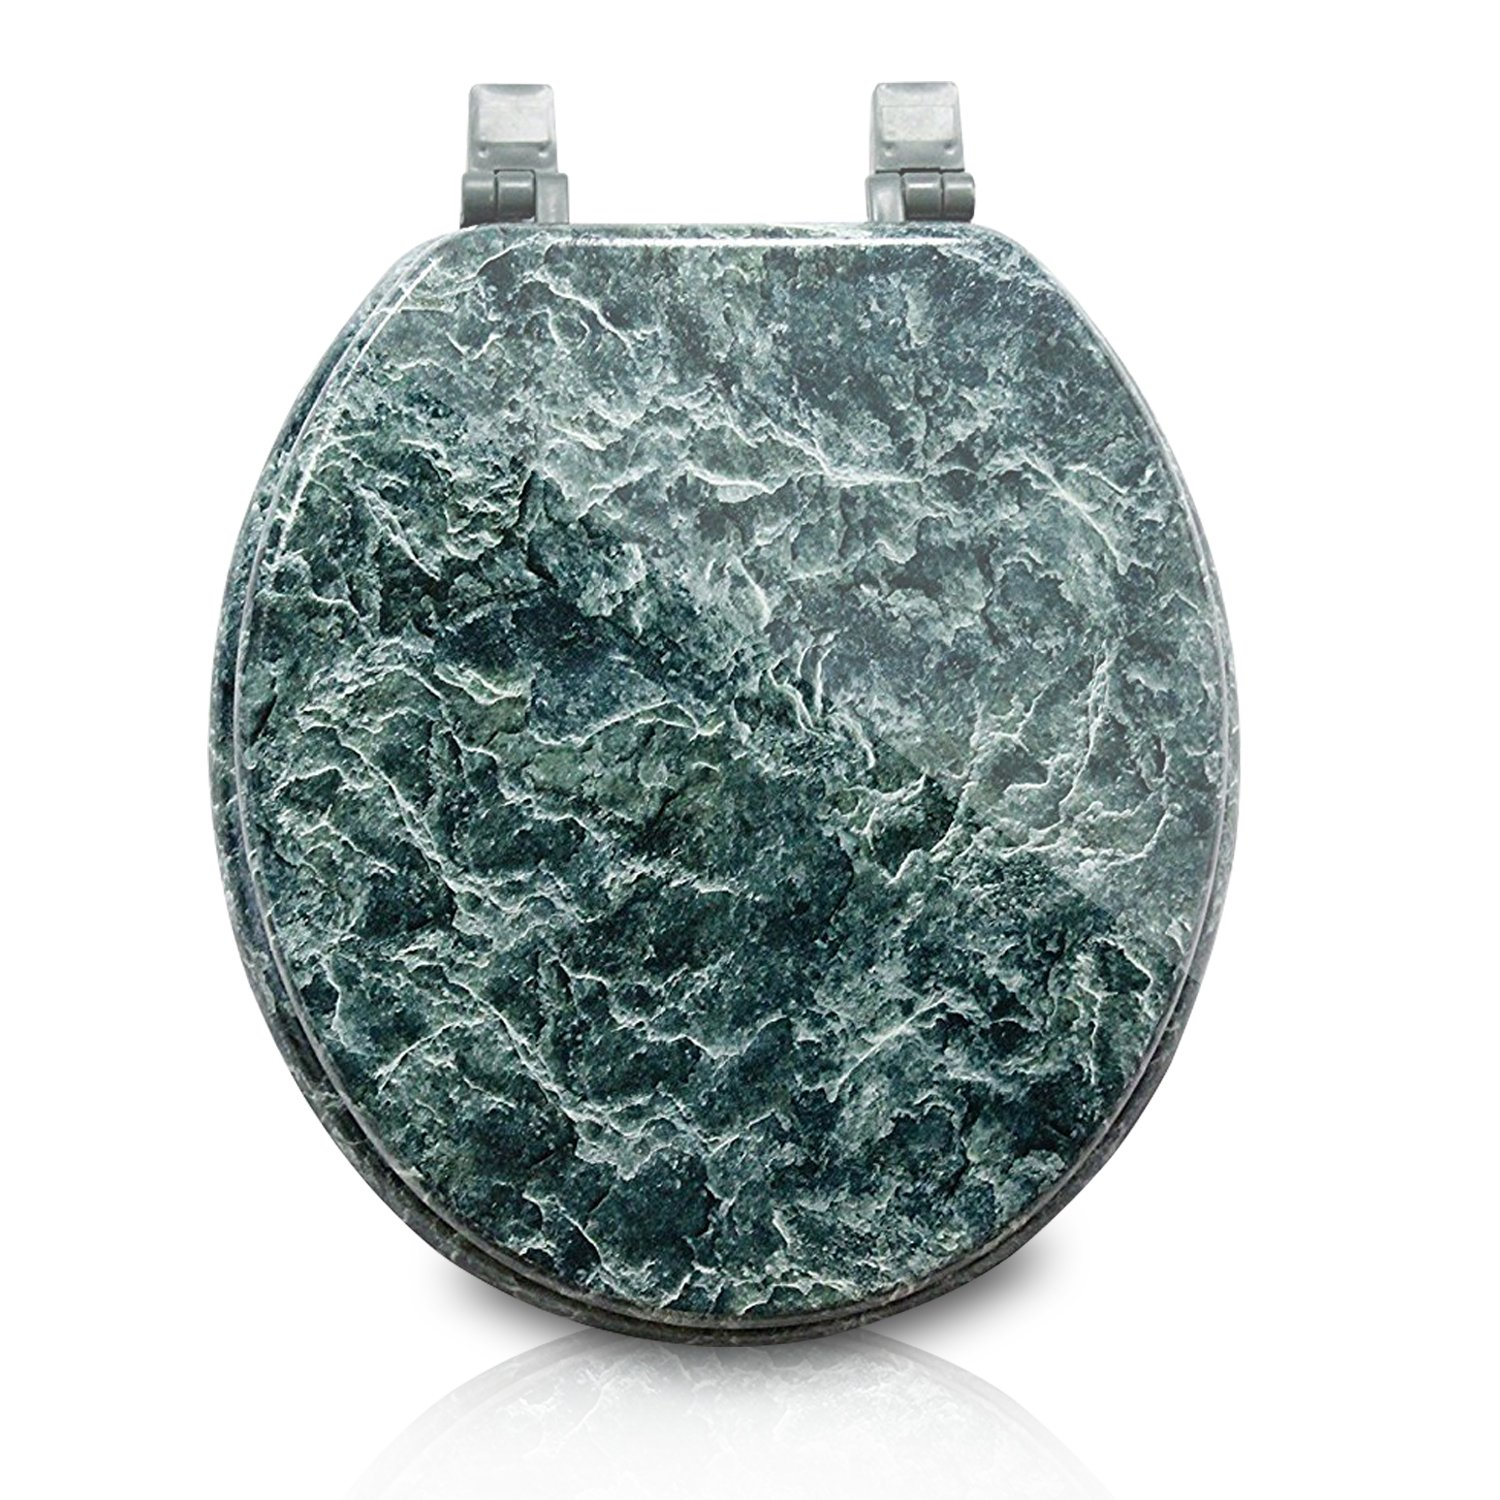 Trimmer Marblized Molded Wood Toilet Seats Faux-marble Painting In Green Marble - Wood Composite with Water and Stain-resistant Finish